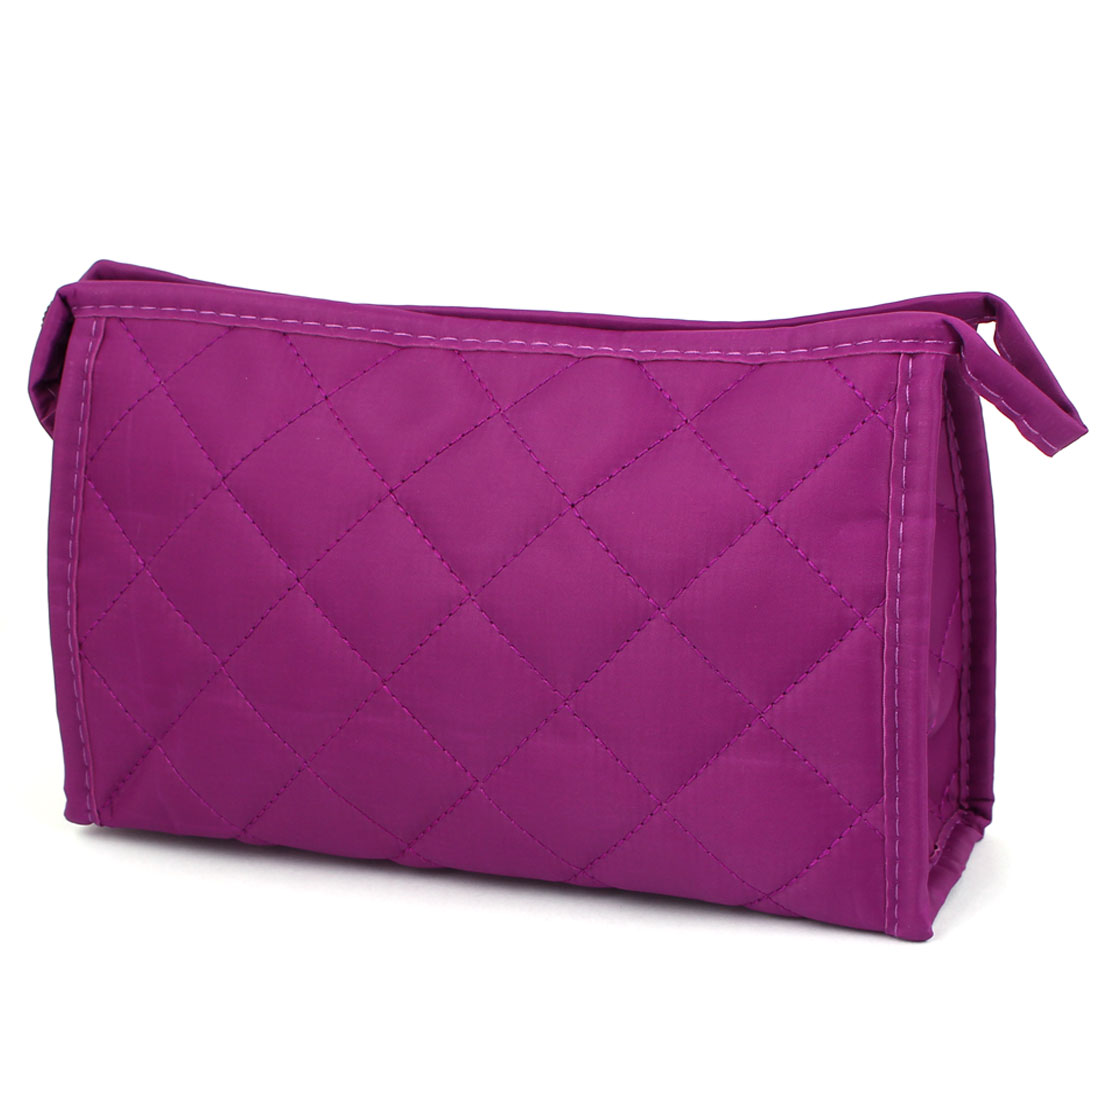 Rhombic Pattern Zipper Makeup Cosmetic Bag Case Container Purple w Mirror